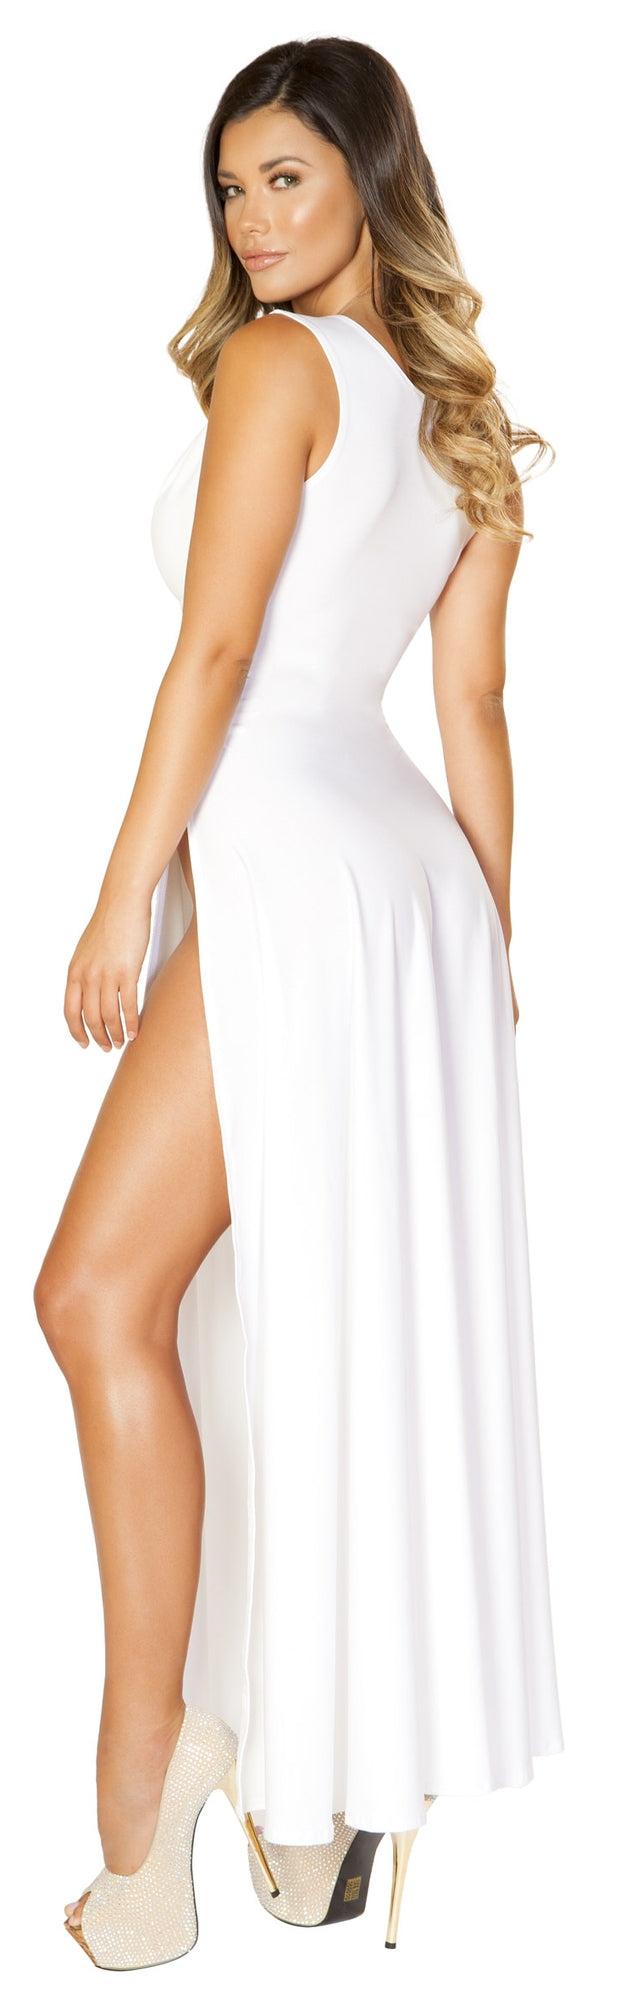 RM-3533 V neckline high cut maxi white dress